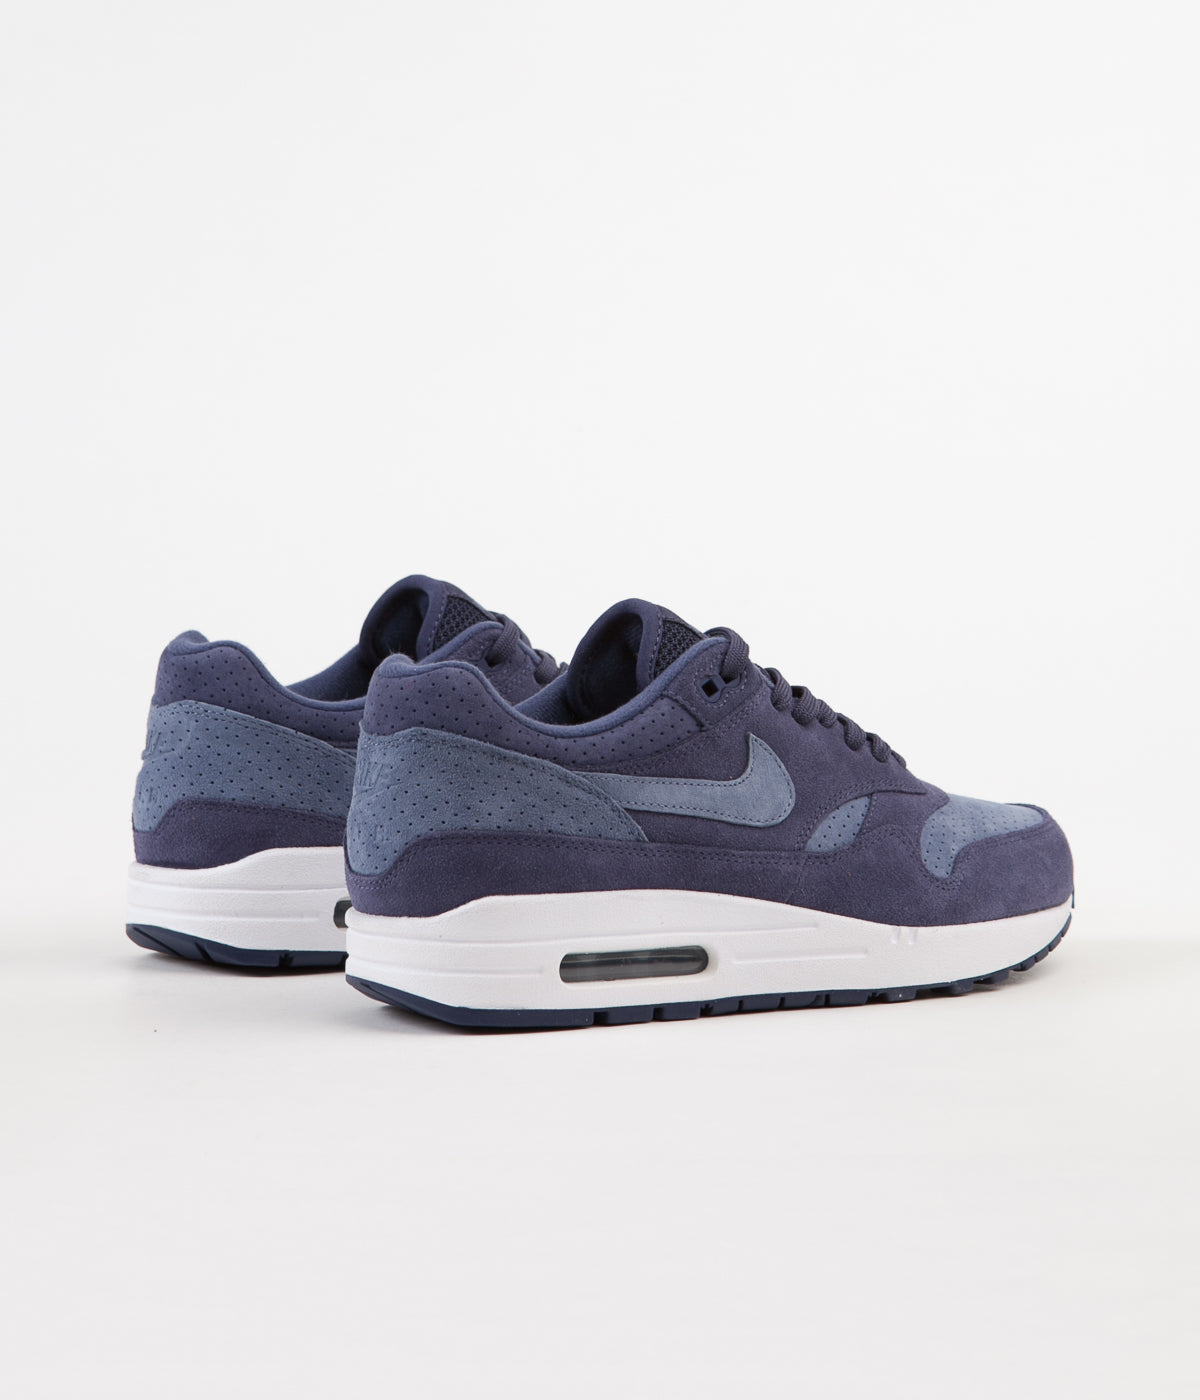 huge selection of 23458 78b99 promo code for nike air max 1 premium suede 27c06 a46d9